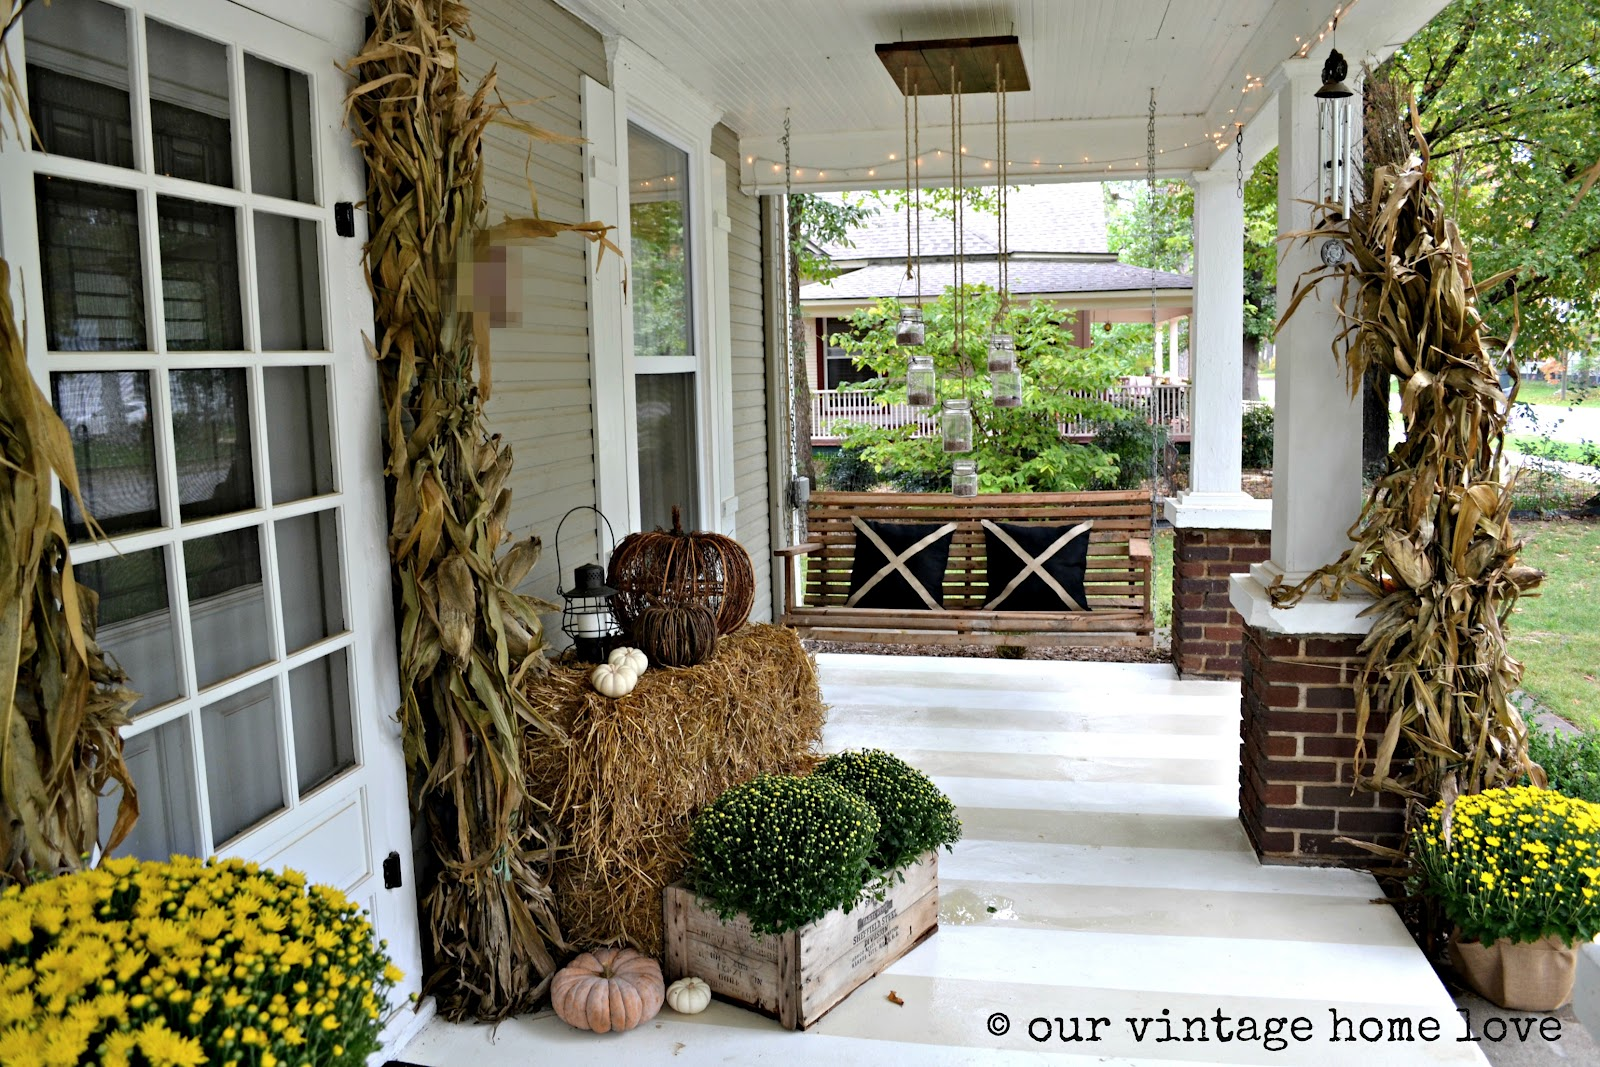 Our vintage home love autumn porch ideas - Vintage front porch decorating ...